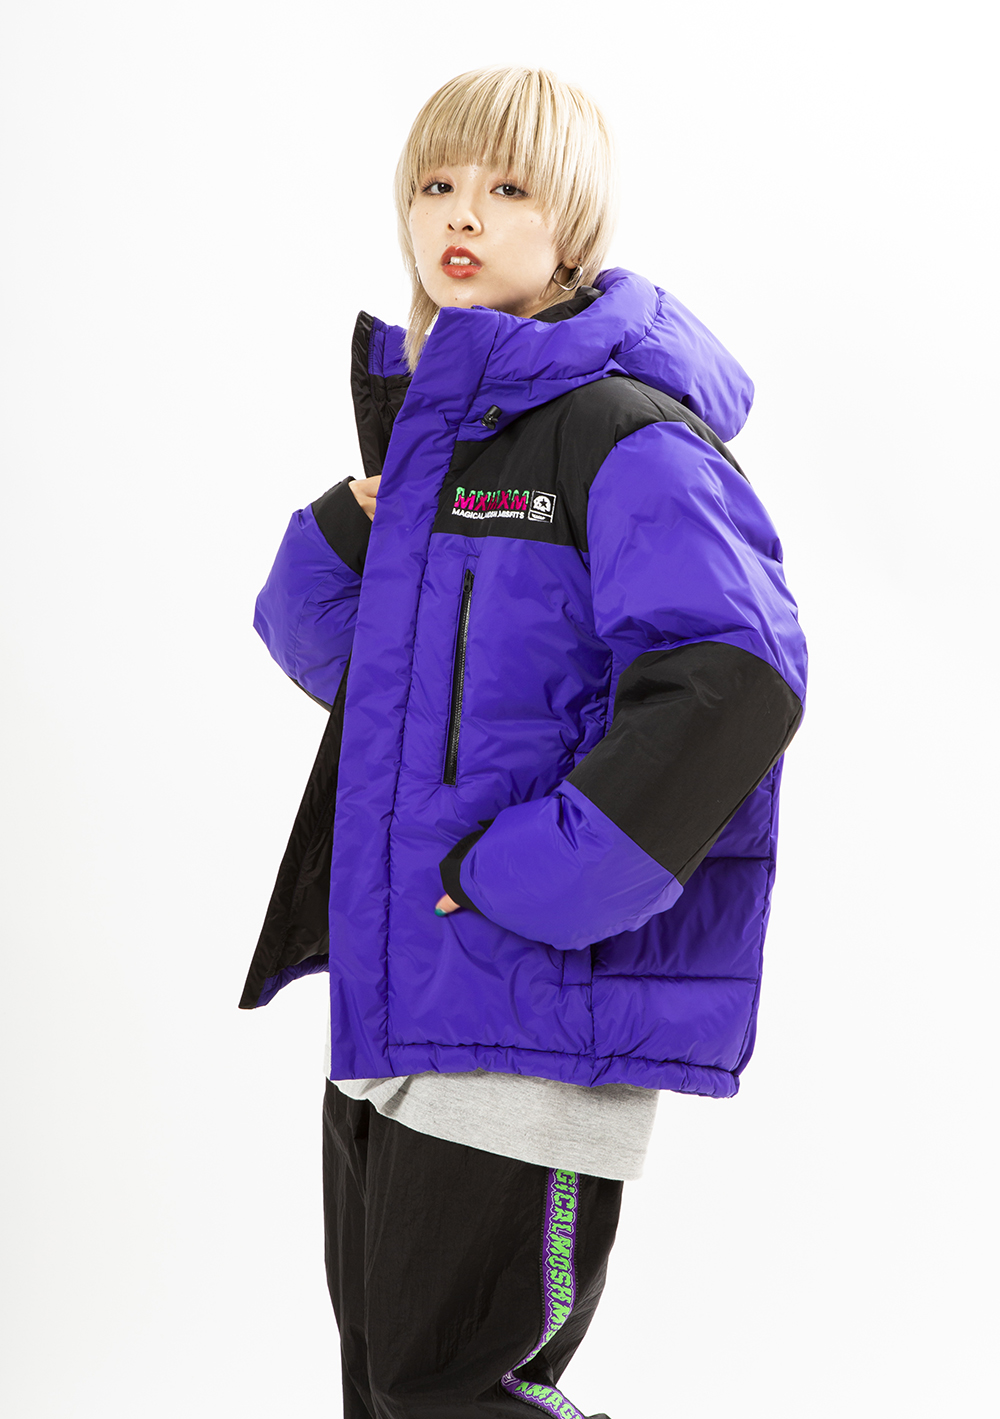 [SOLD OUT]MxMxM HOODED PUFFY JKT